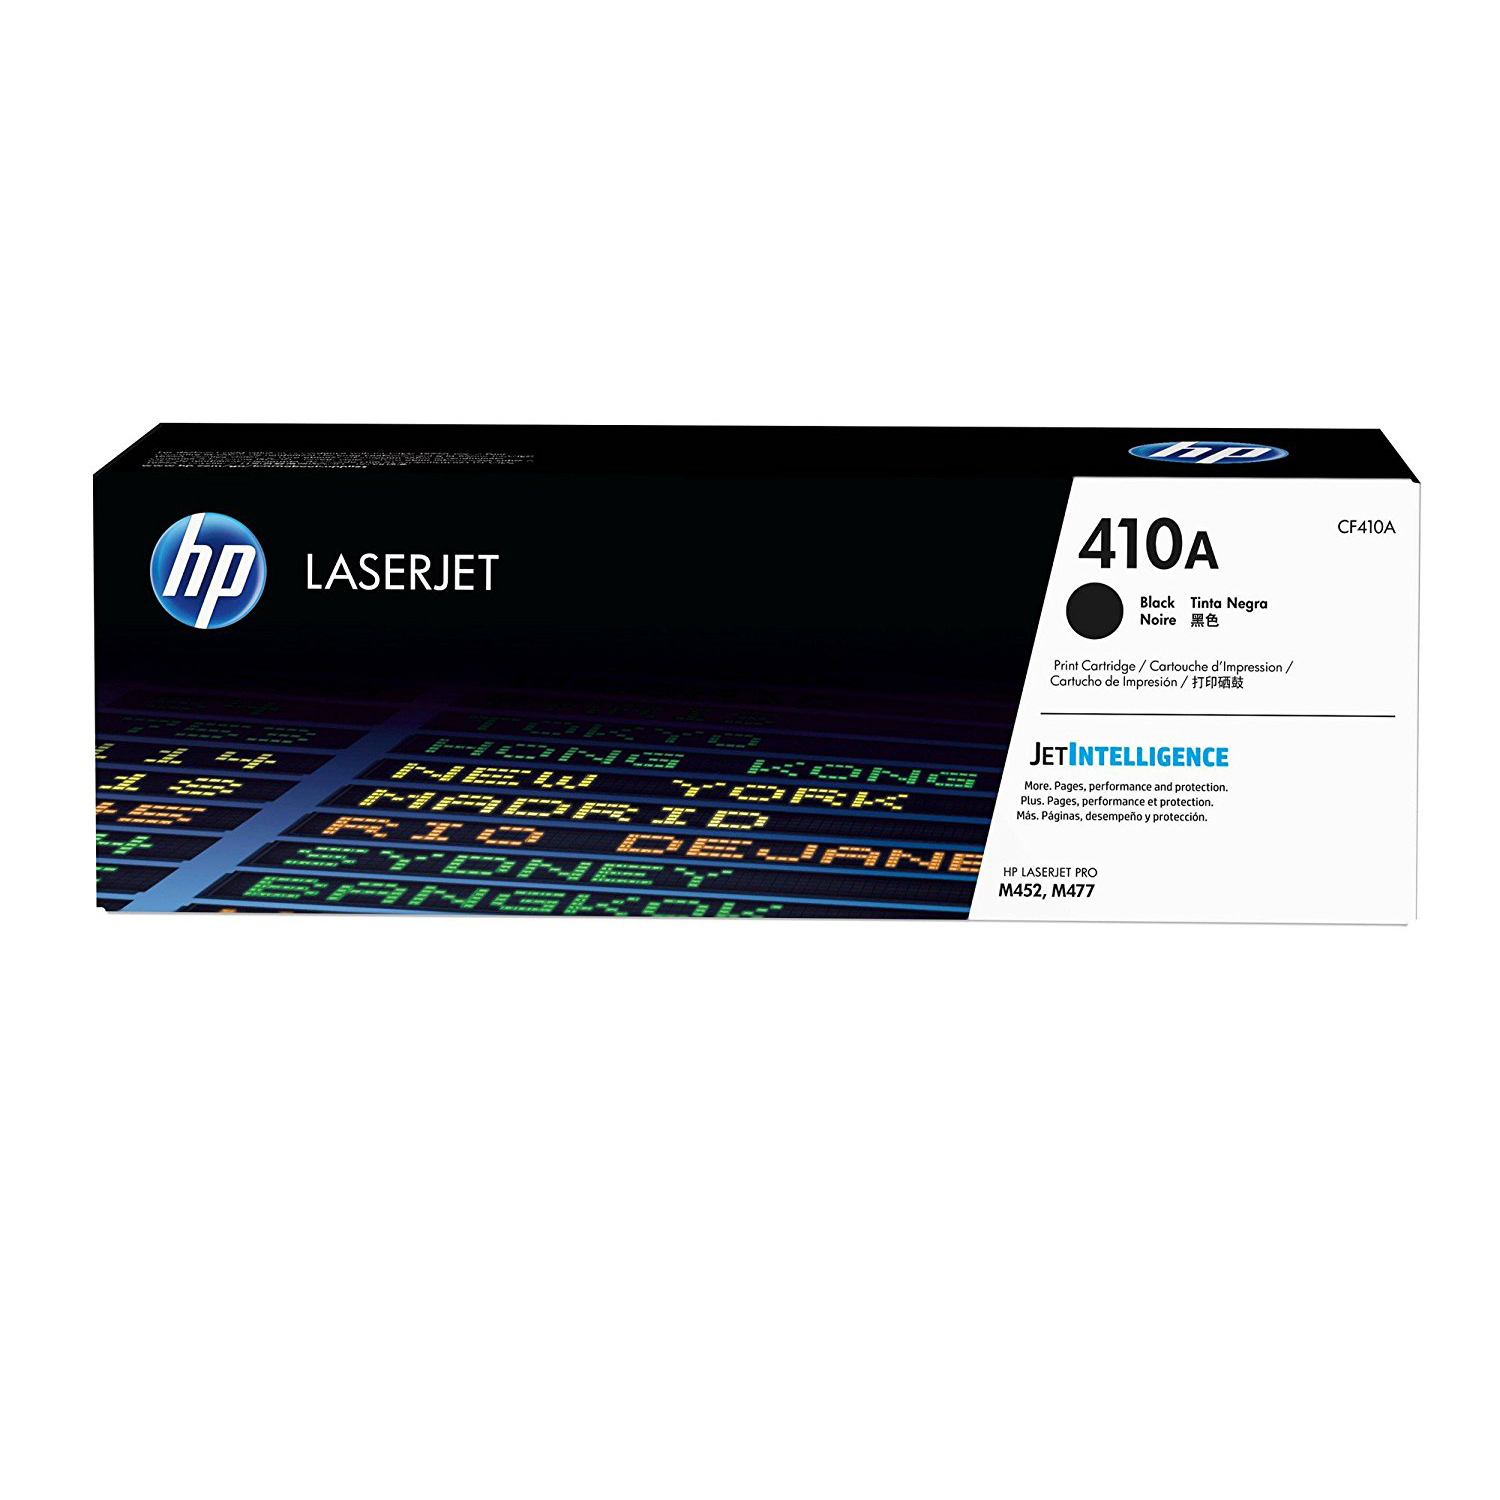 HP 410A (CF410A) Black Toner Cartridge